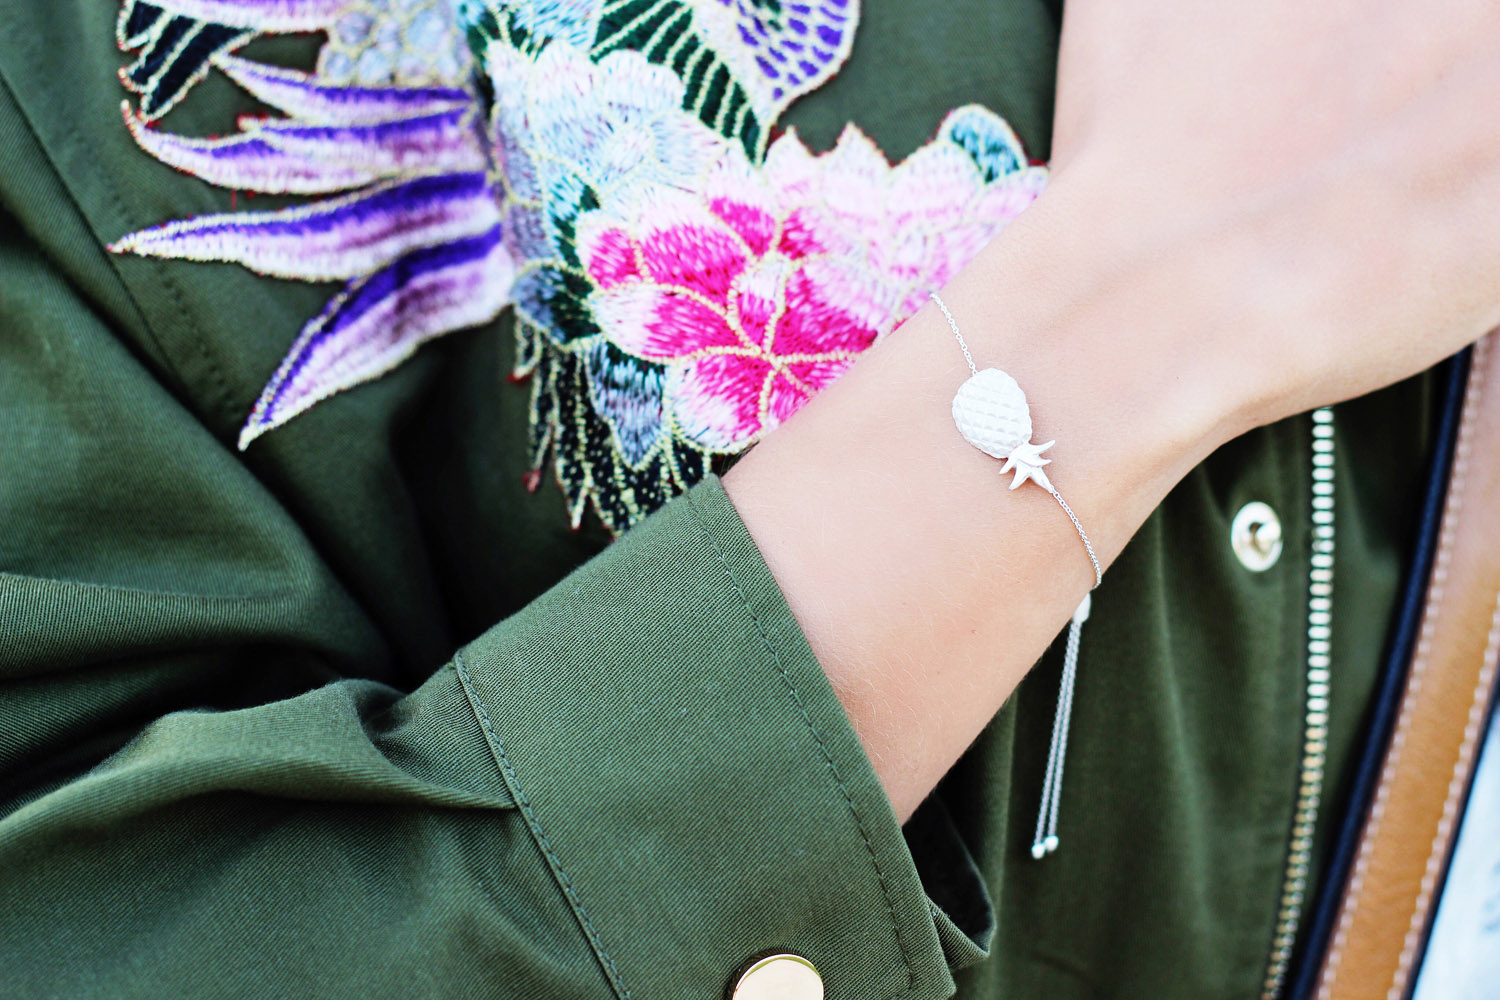 fatimayarie-pineapple-silver-bracelet-baroccissima-jewelry-munich-flowerjacket-munichblogger-mg_4200